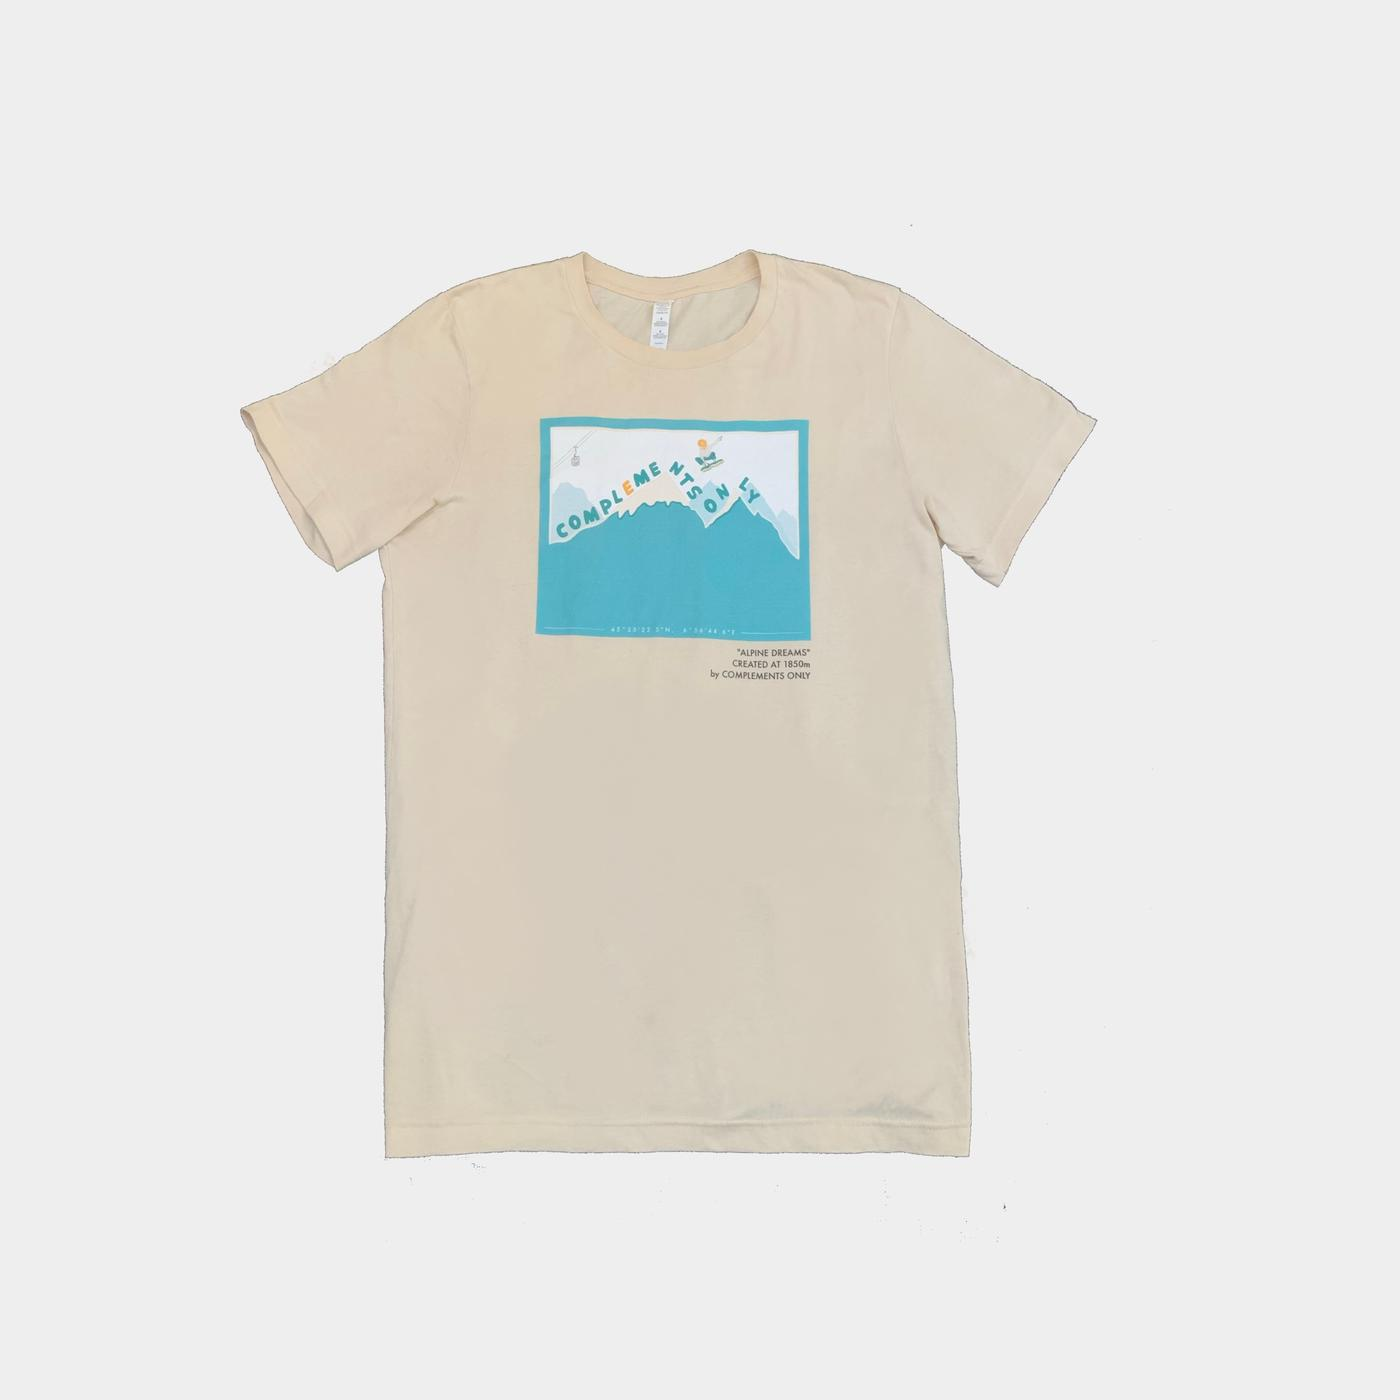 alpine dreams t-shirt